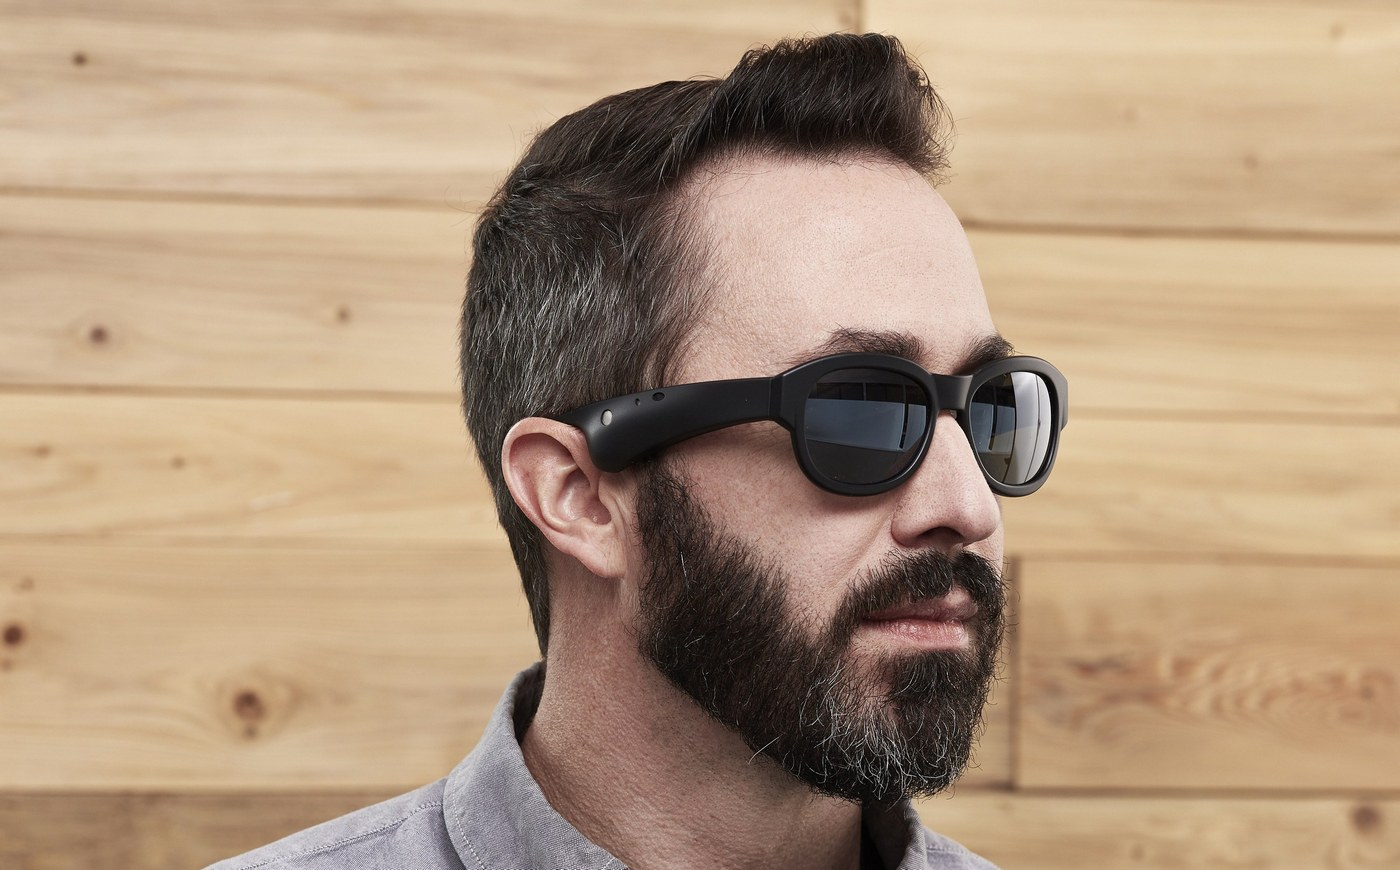 Bose has unveiled sunglasses that have speakers for augmented reality -